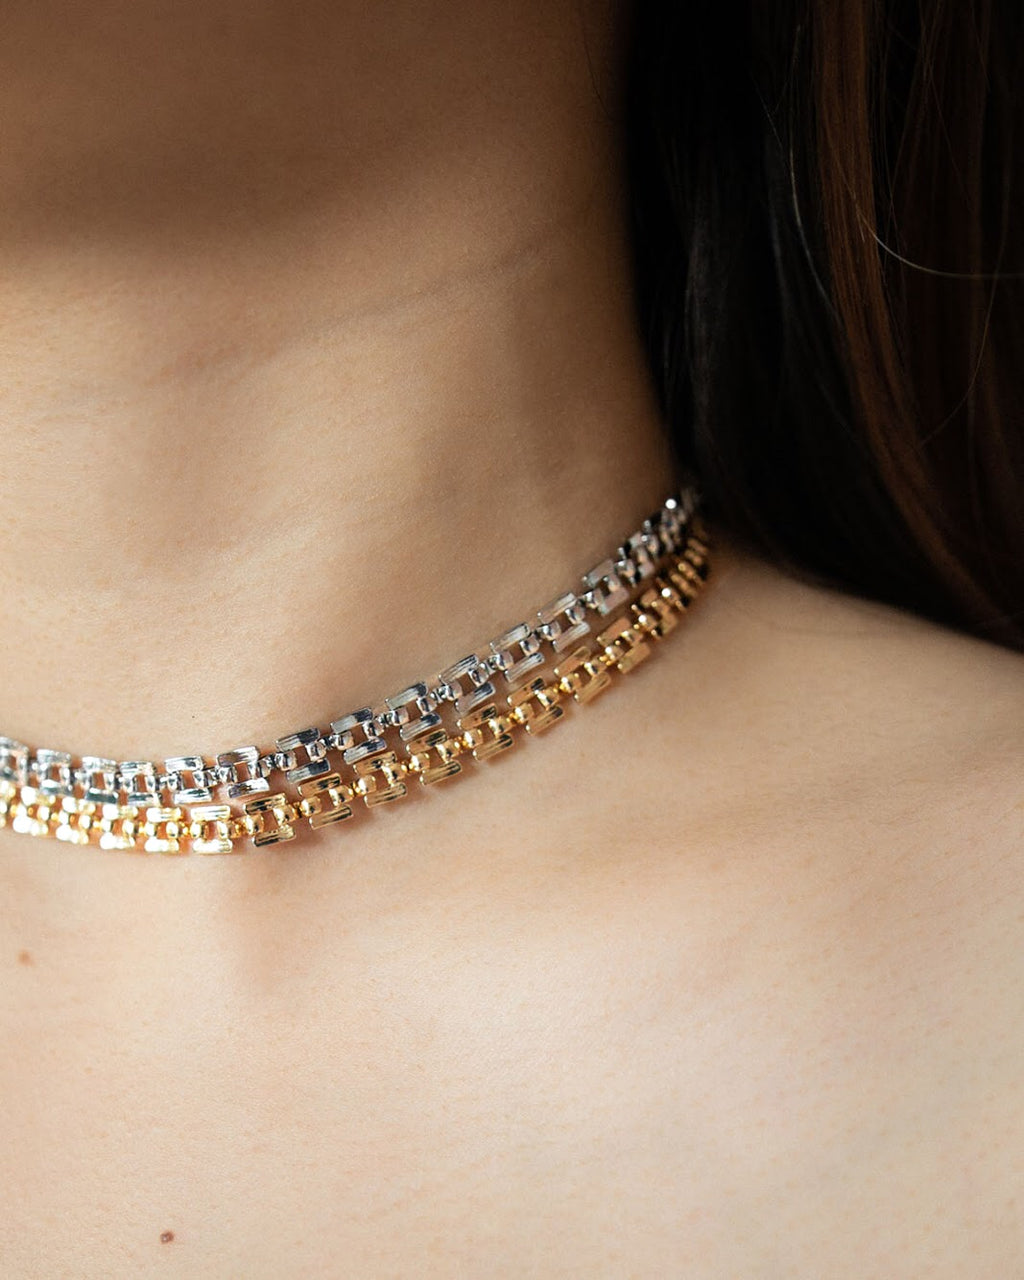 Stylish choker necklace with intricate chain link details - Tetris choker by The Hexad Jewellery